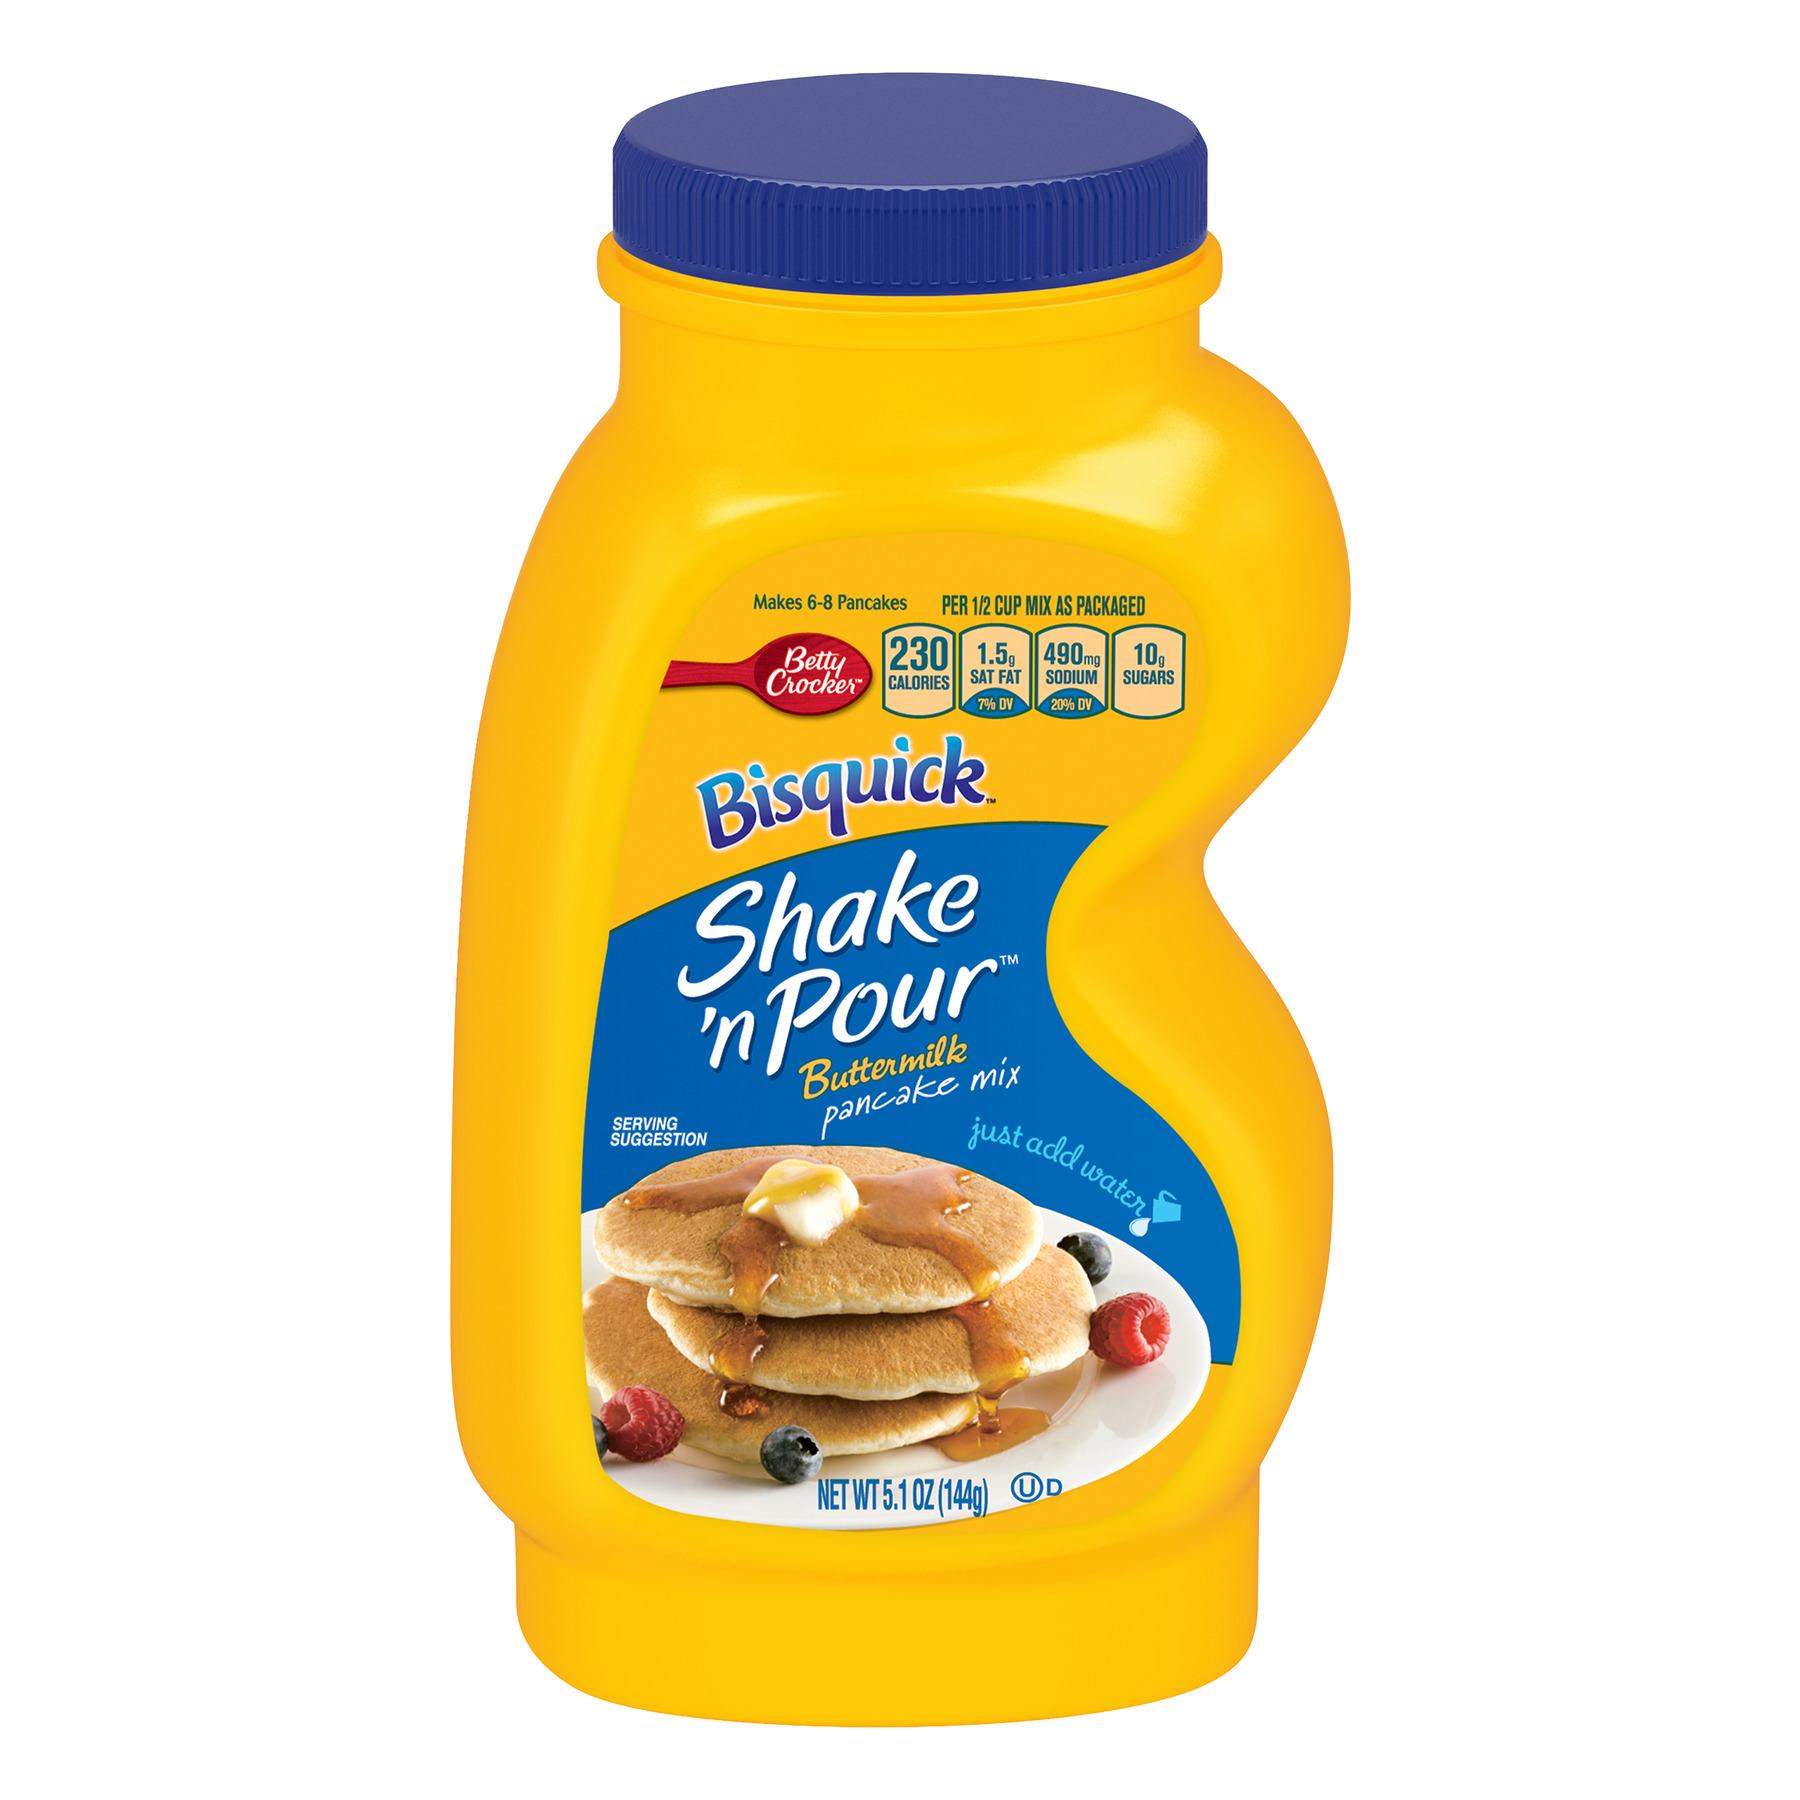 Bisquick Baking Mix Shake 'N Pour Pancake Mix Buttermilk 5.1 Oz Bottle